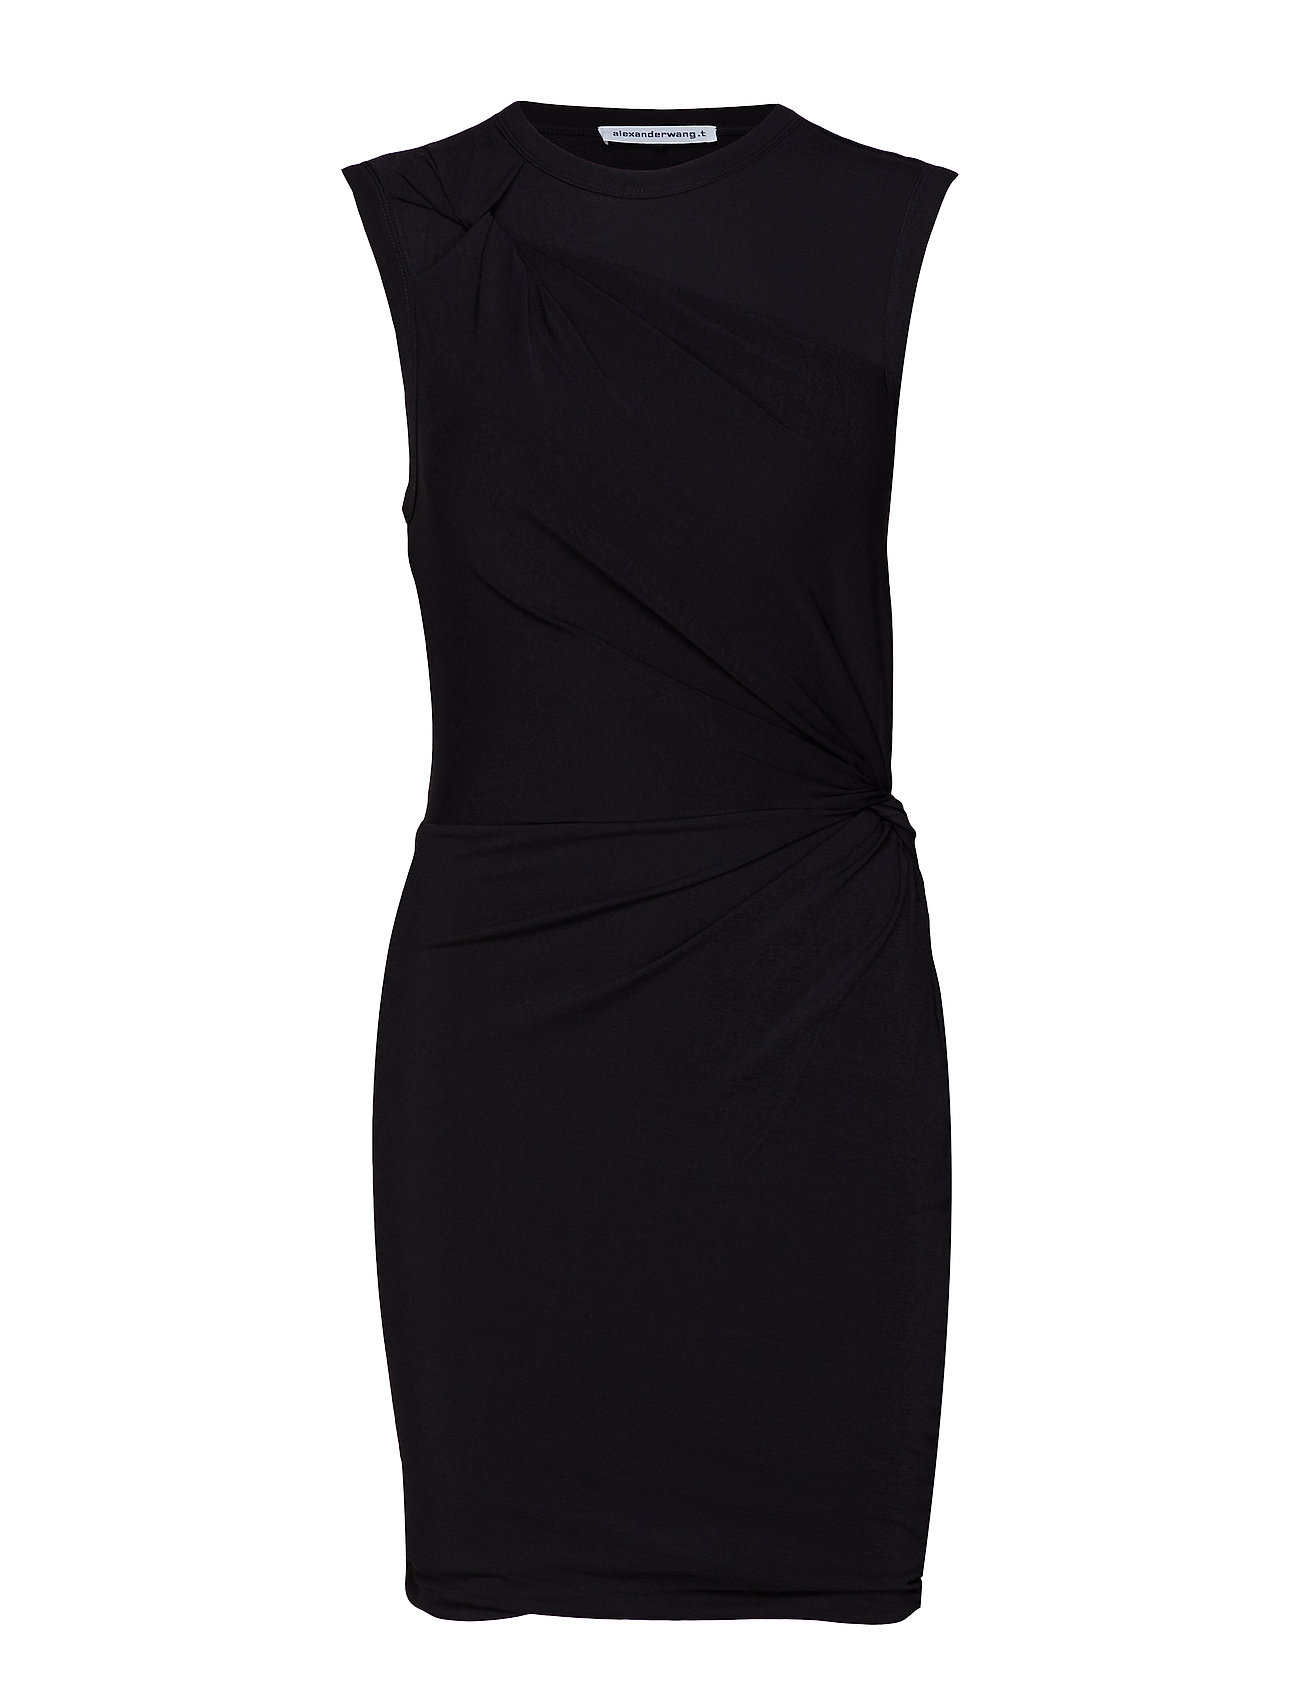 T by Alexander Wang TWISTED CREPE JERSEY MINIDRESS - BLACK